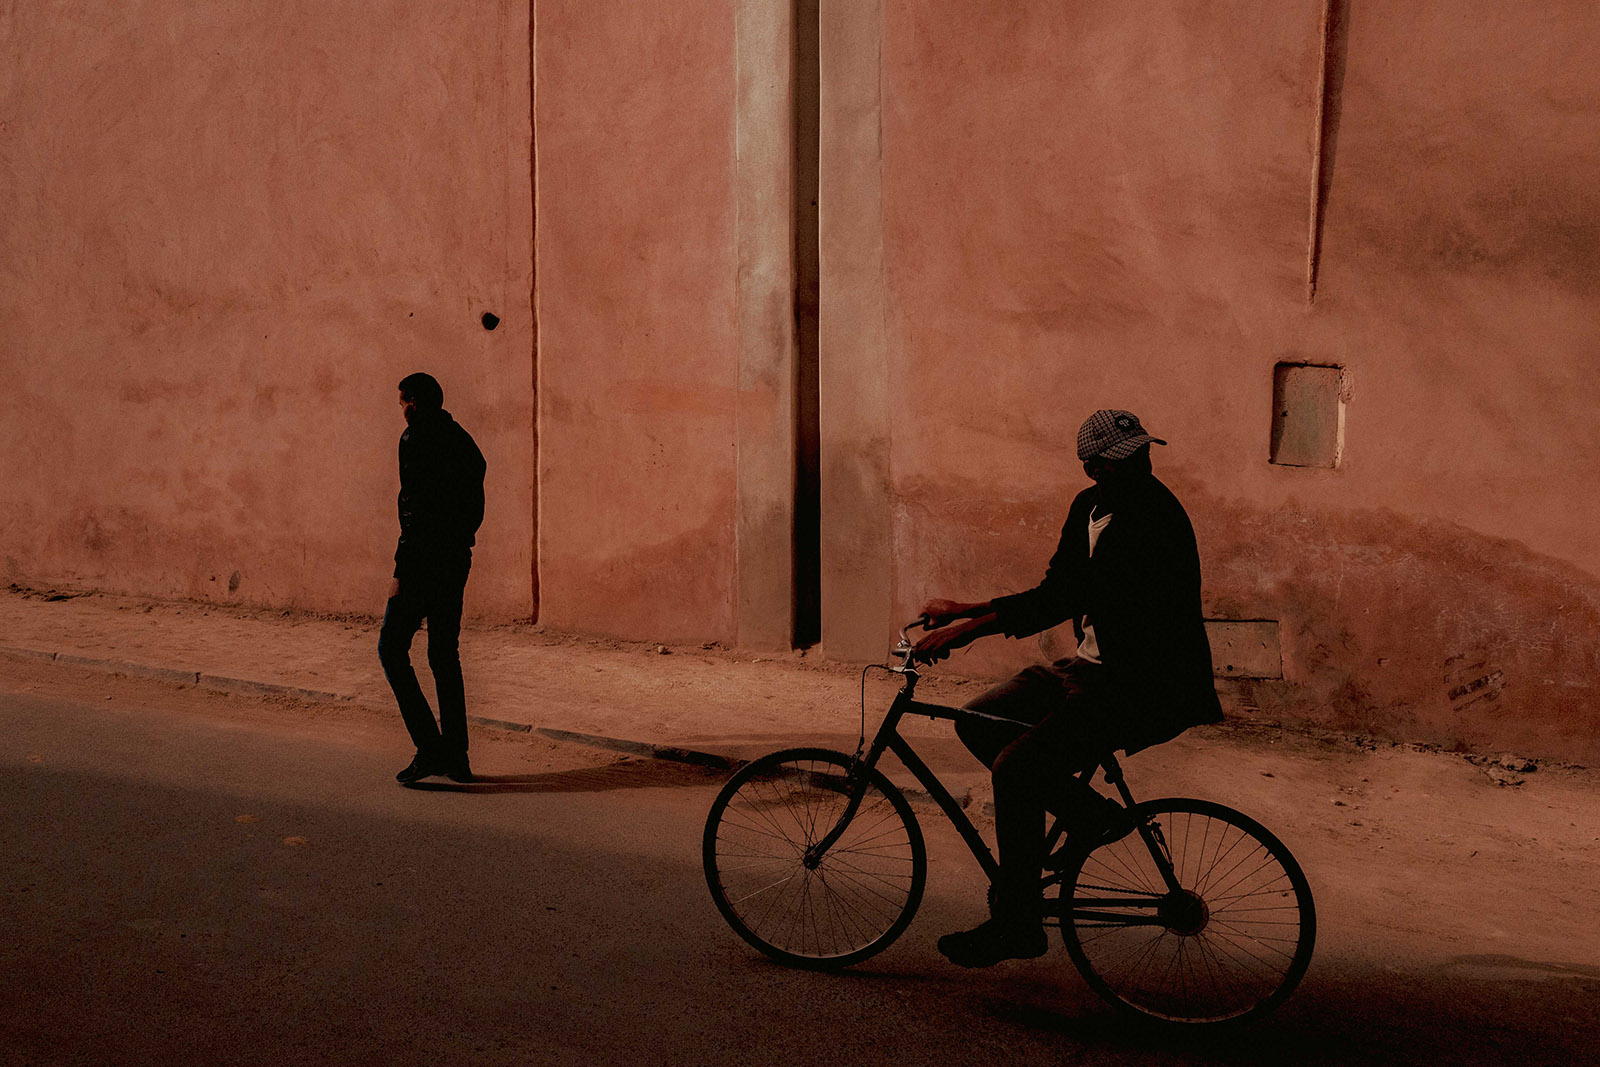 Man on bike looking back in Marrakech, Morocco